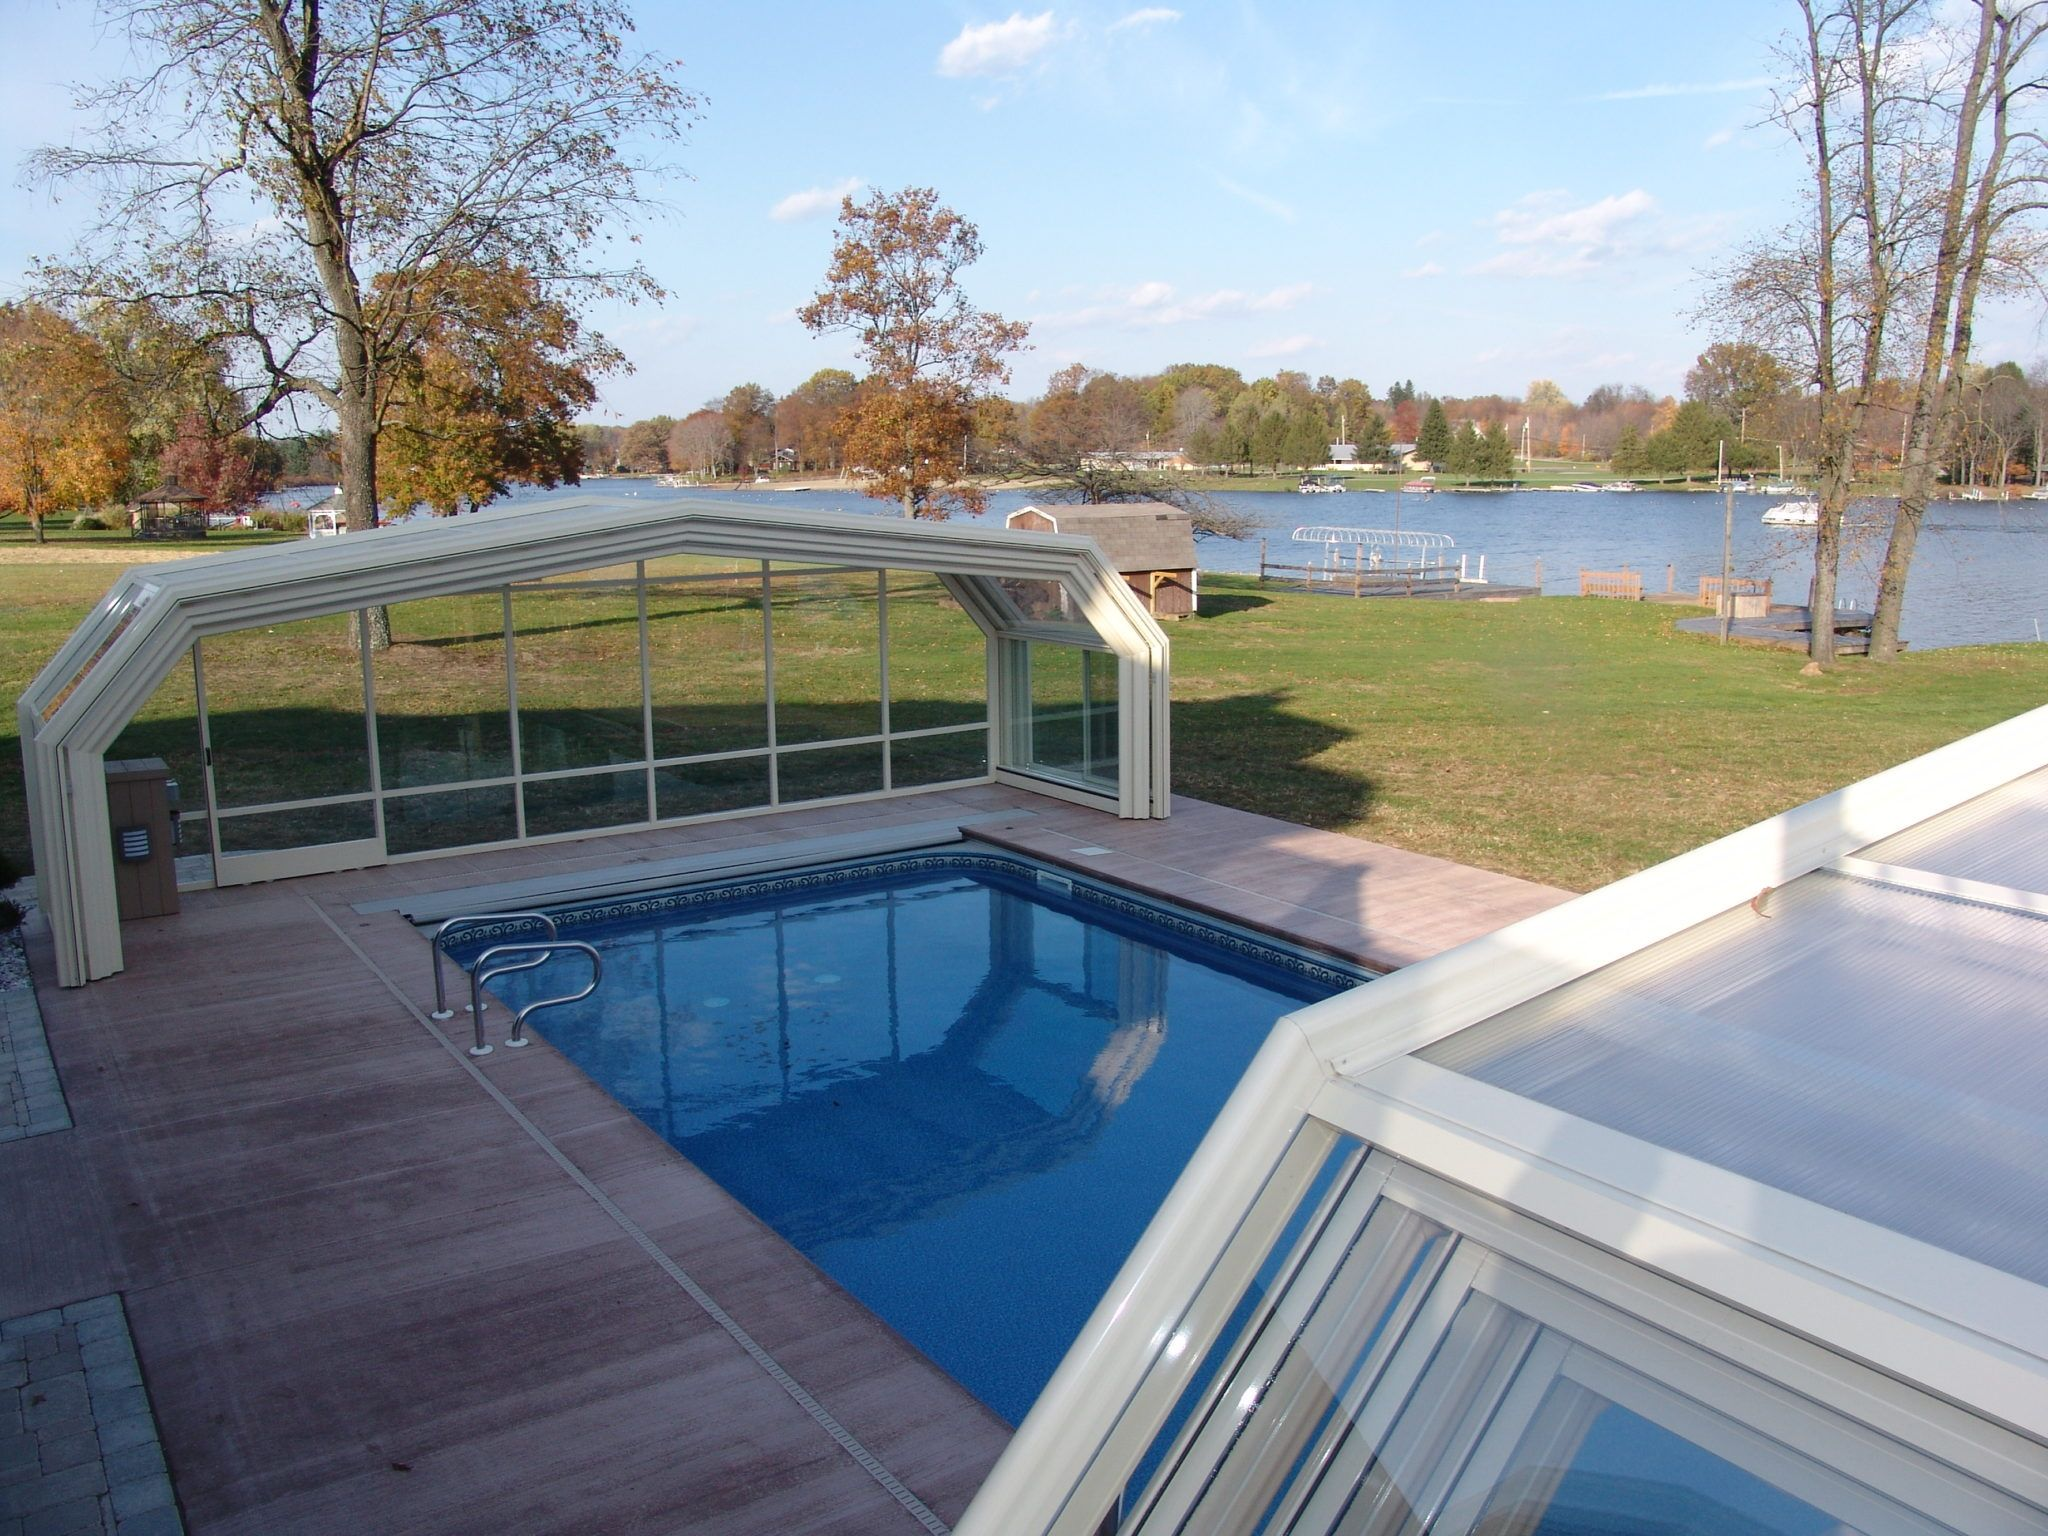 Pennsylvania Pool Enclosure Manufactured By Roll A Cover Pool Enclosures Pool Outdoor Pool